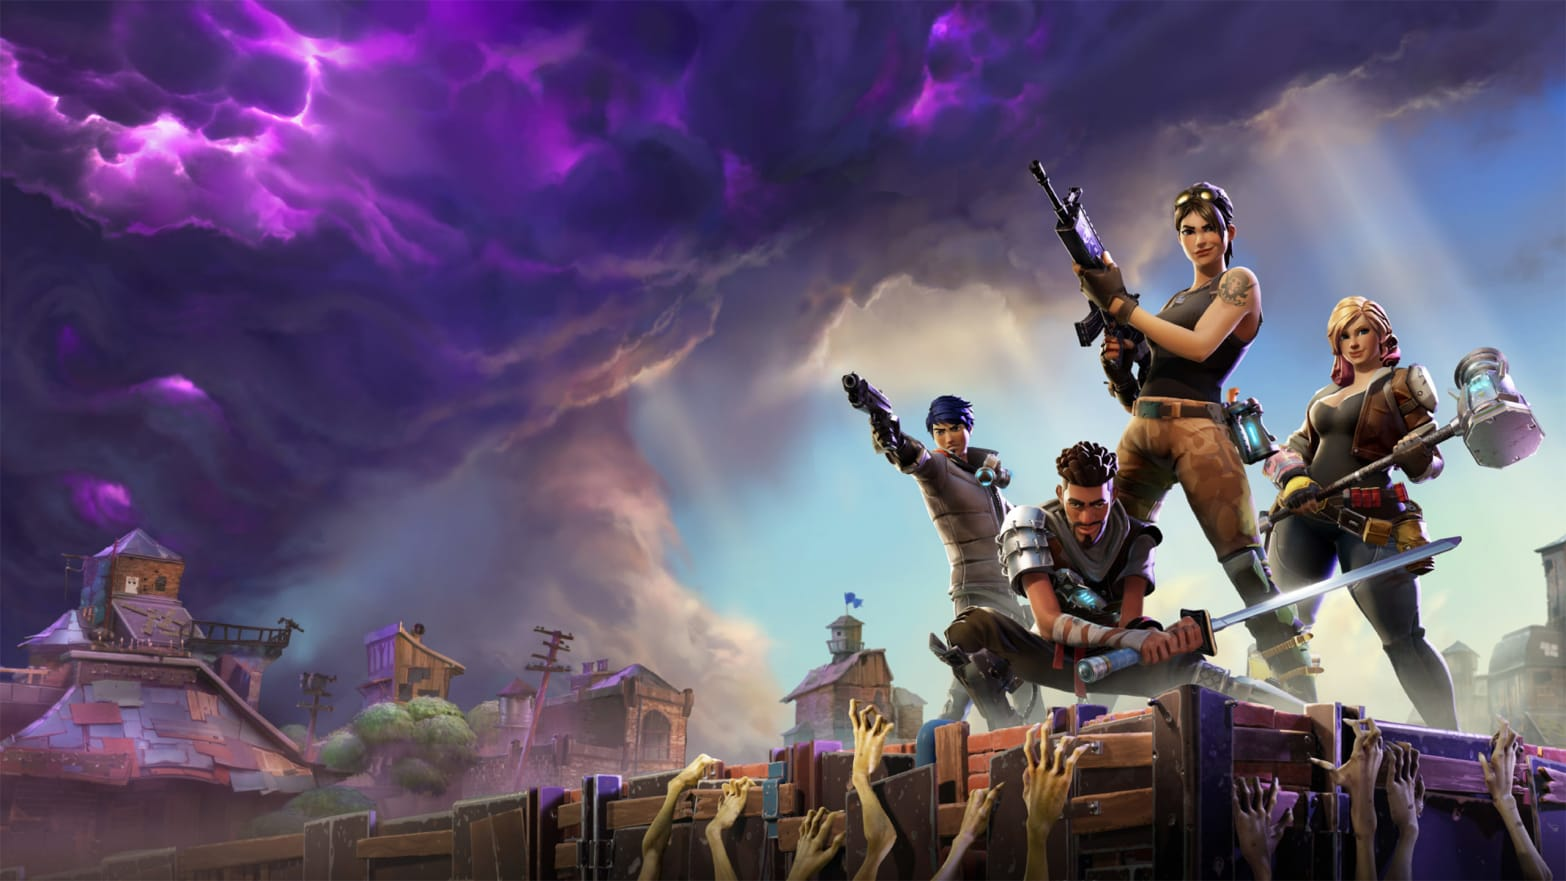 How Fortnite Became the Biggest Game on the Internet